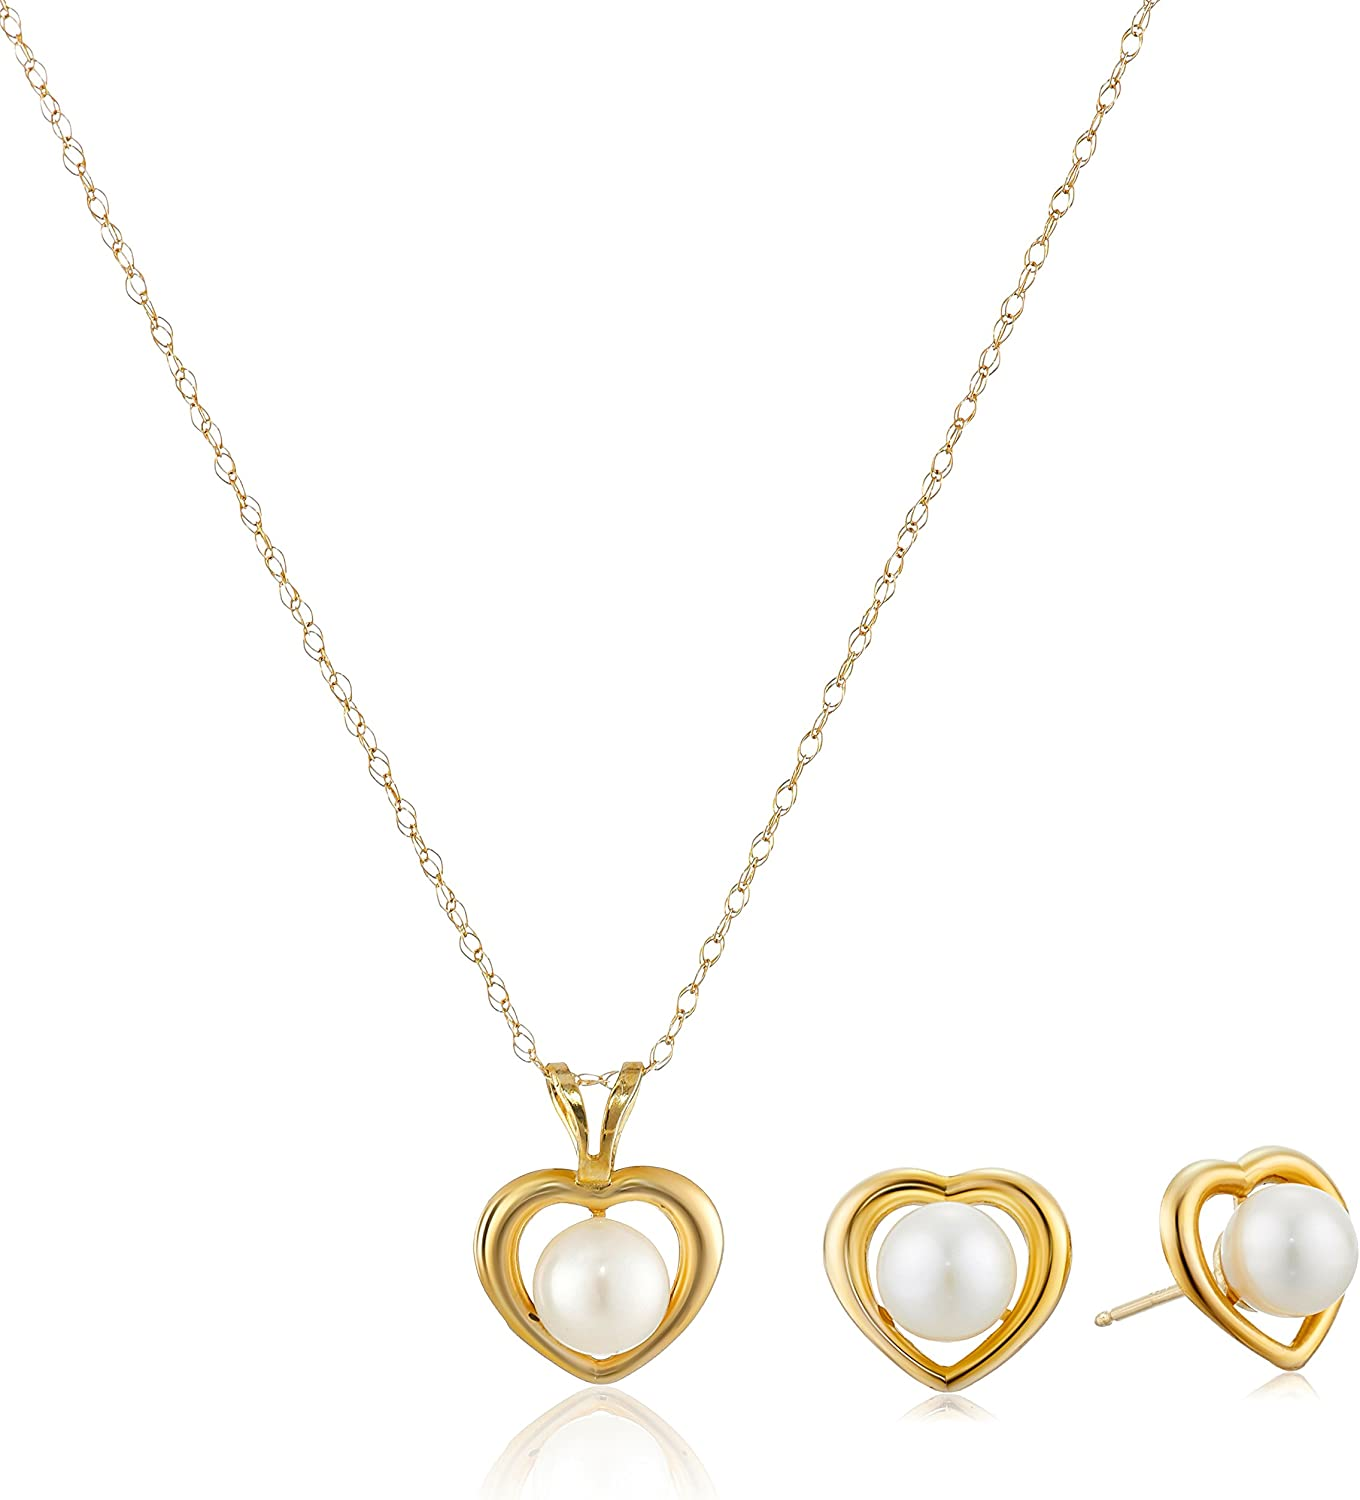 Heart Shape 14k 5-6mm White Cultured Freshwater Pearl Pendant Necklace and Stud Earrings Jewelry Set